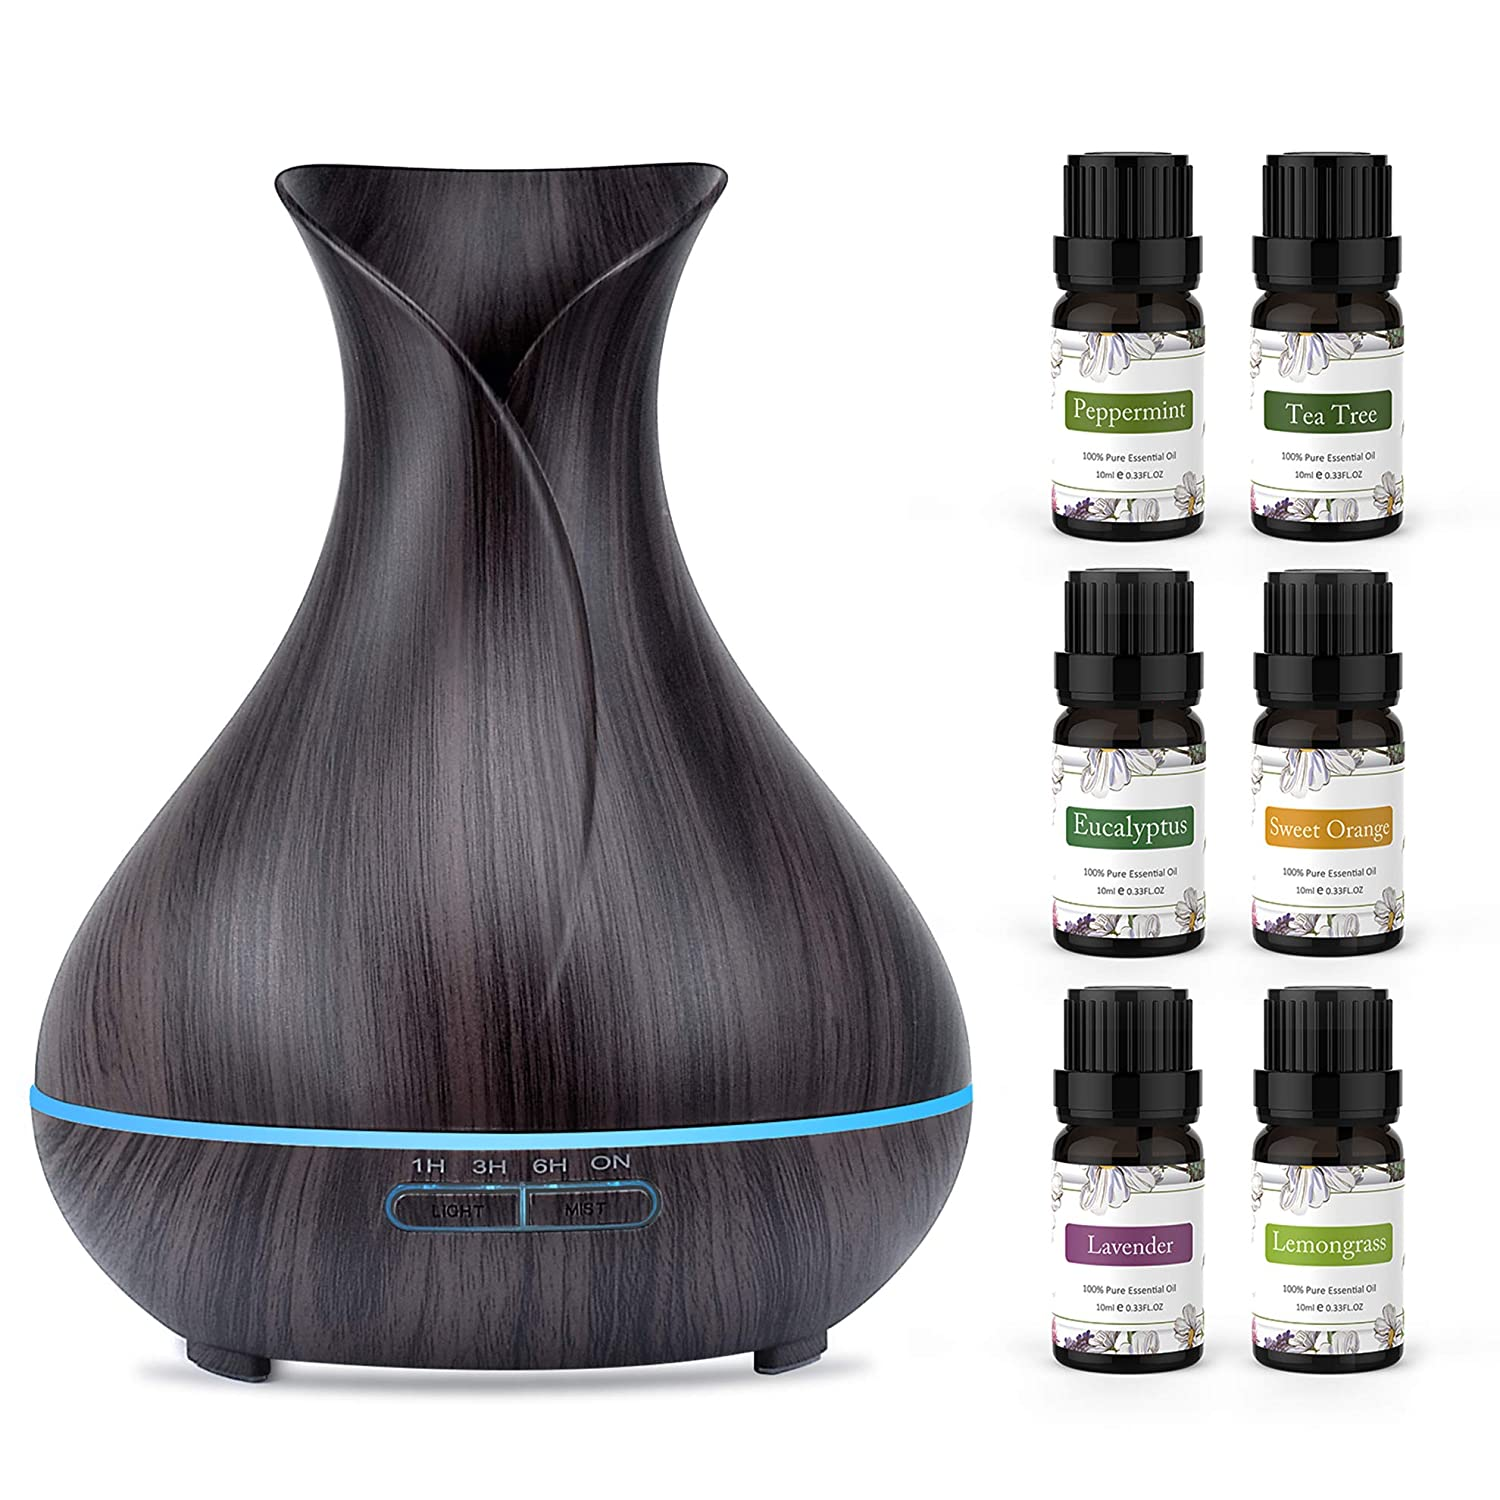 ASAKUKI 400ml Essential Oil Diffuser with 6 Bottles 10ml Pure Natural Essential Oils, 7 LED Color Changing Light and Auto Shut-Off